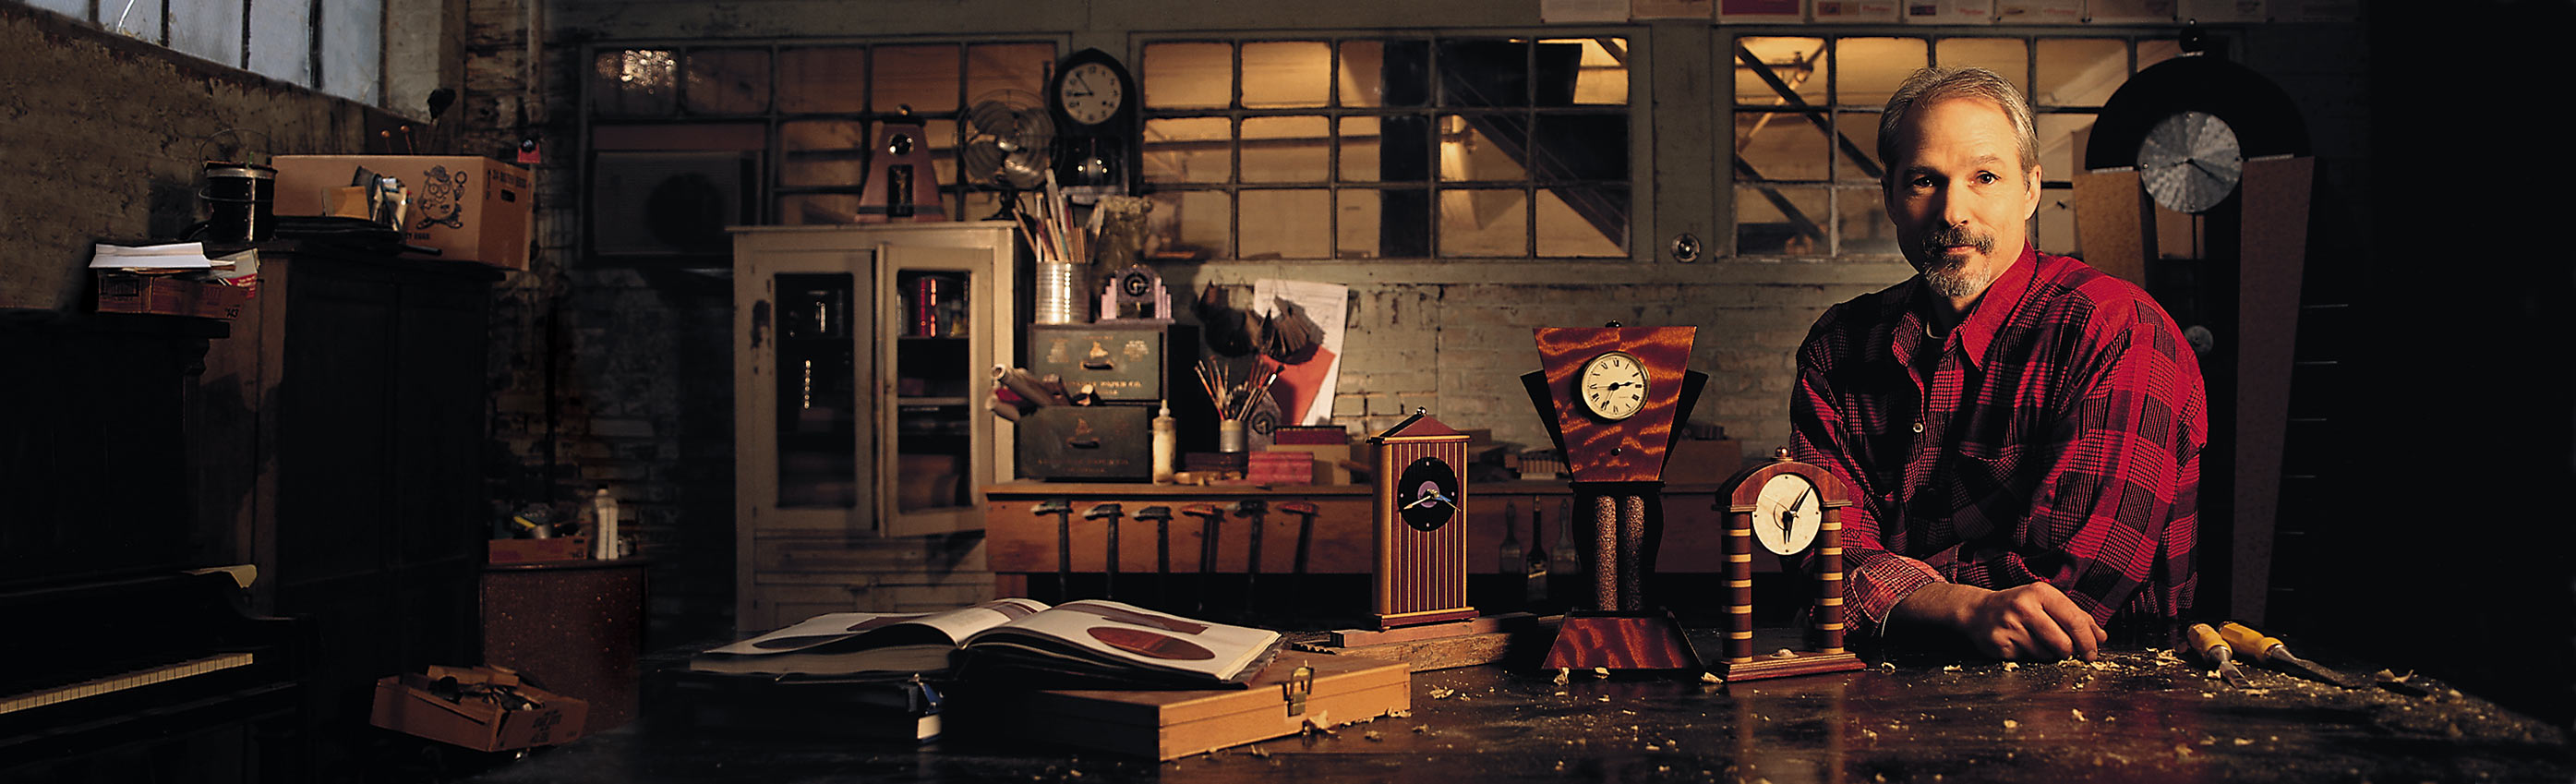 Artisan Clockmaker Workshop